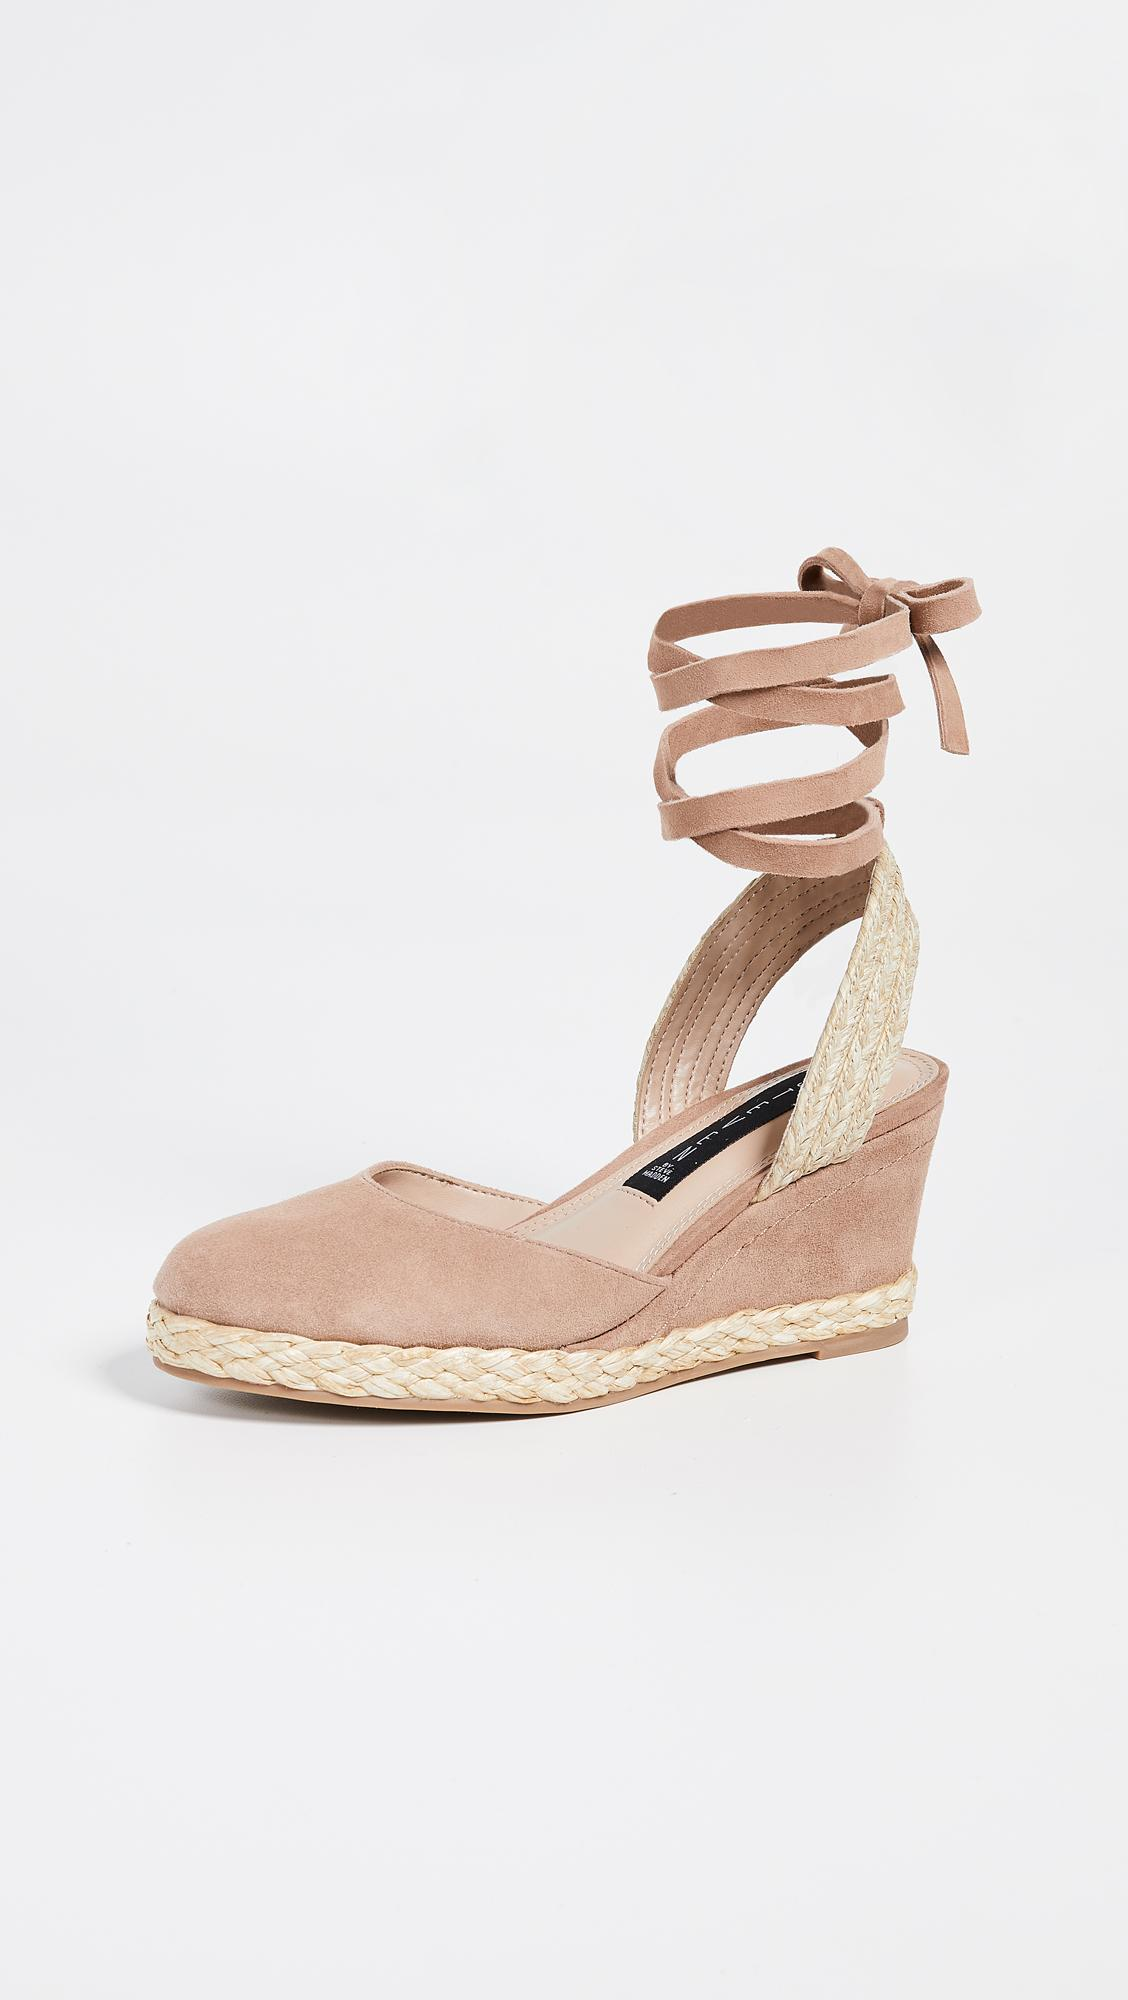 1e63a4cd108 Lyst - Steven by Steve Madden Charly Wedge Espadrilles in Natural